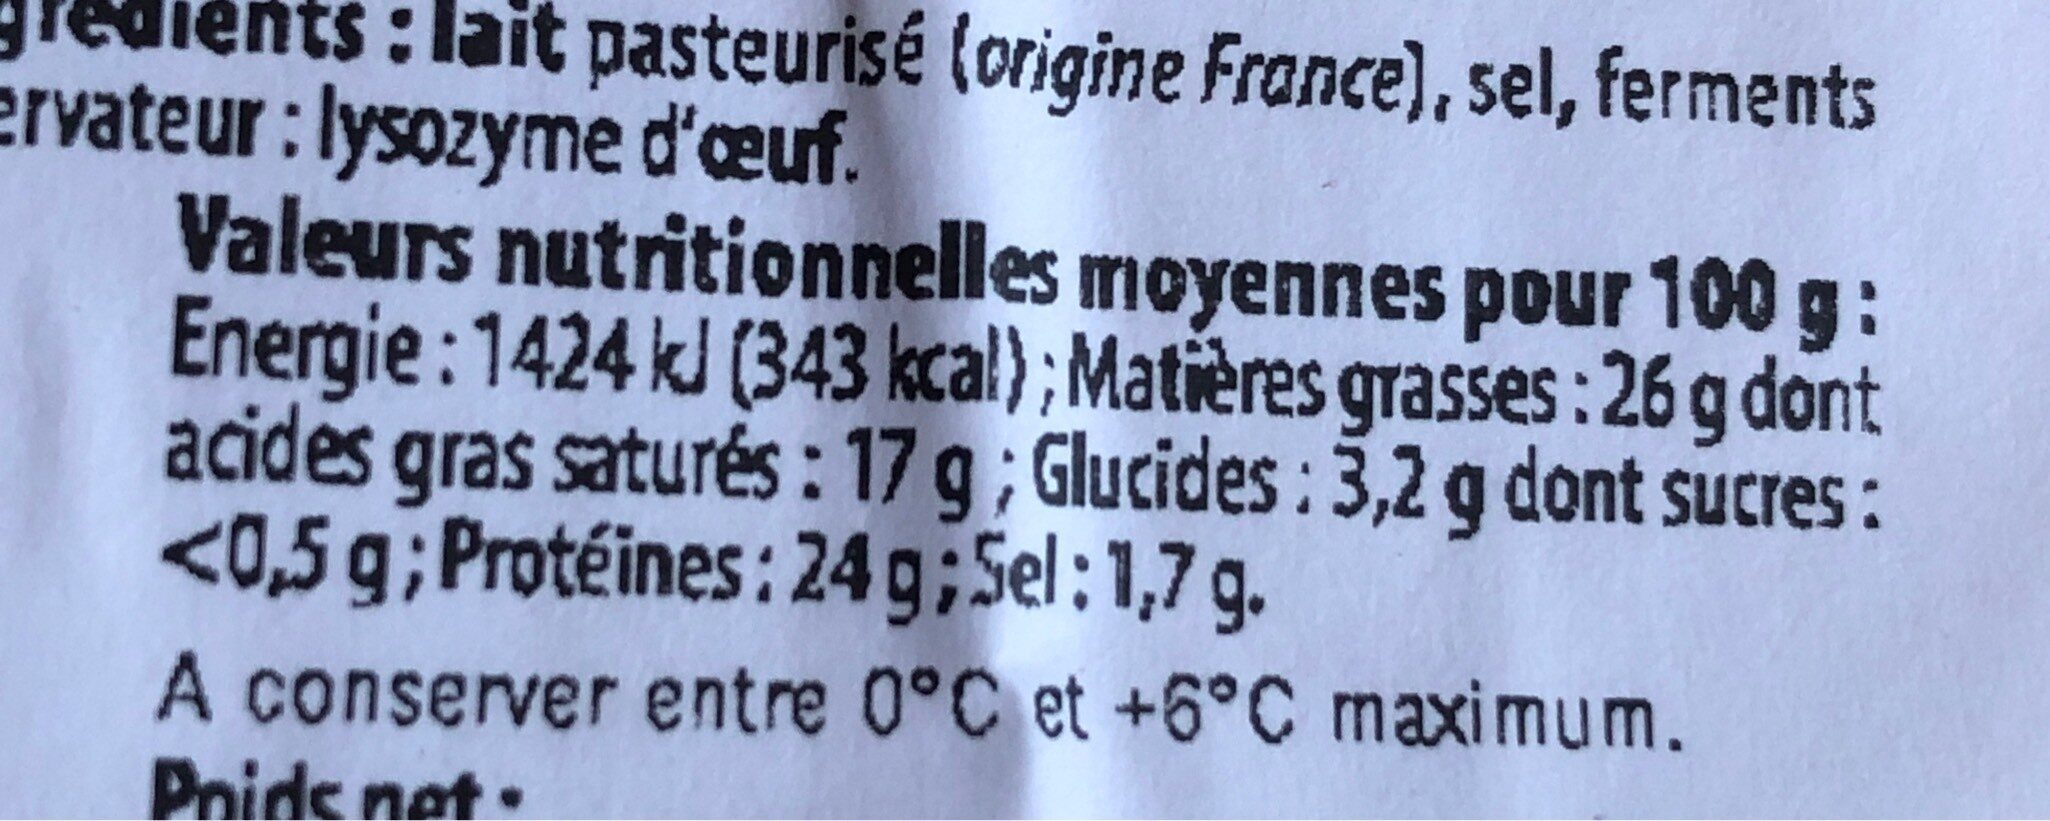 Tomme de montagne au goût fruité - Nutrition facts - fr